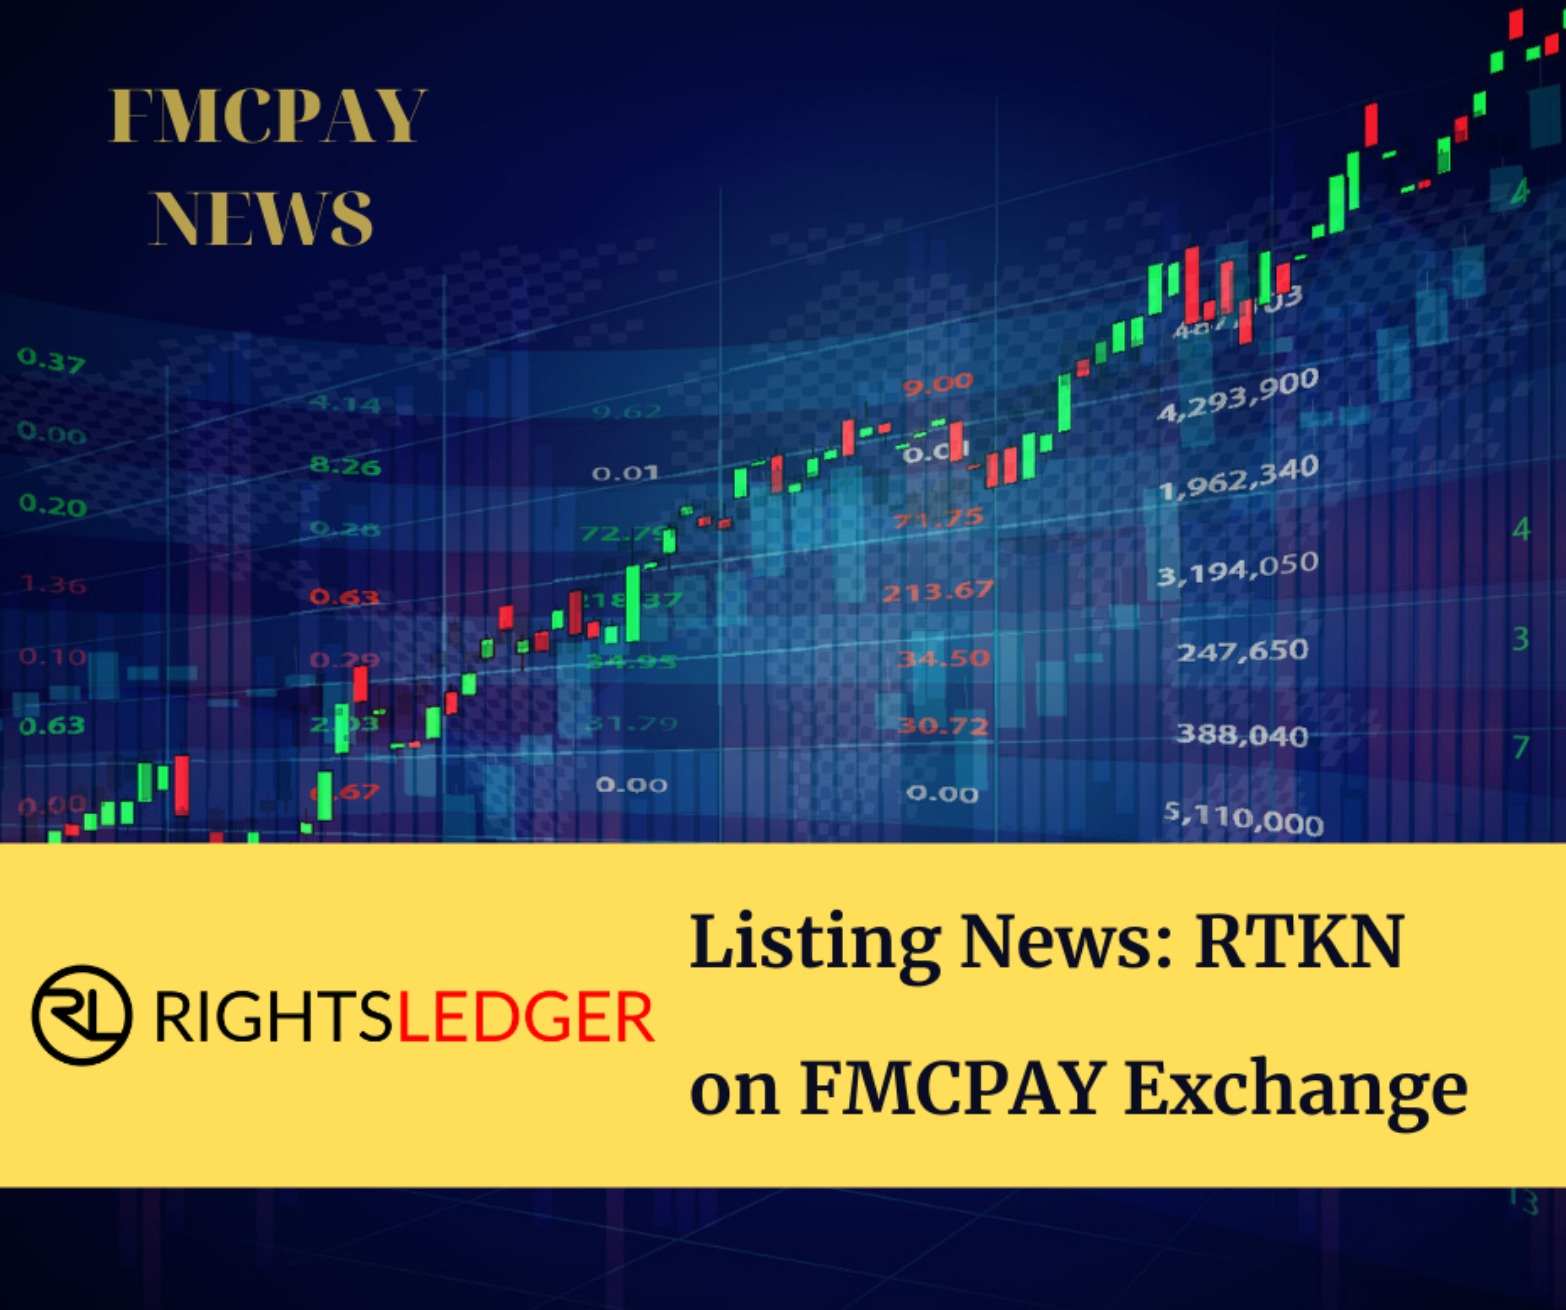 RightsLedger (RTKN) is Now on FMCPAY Exchange